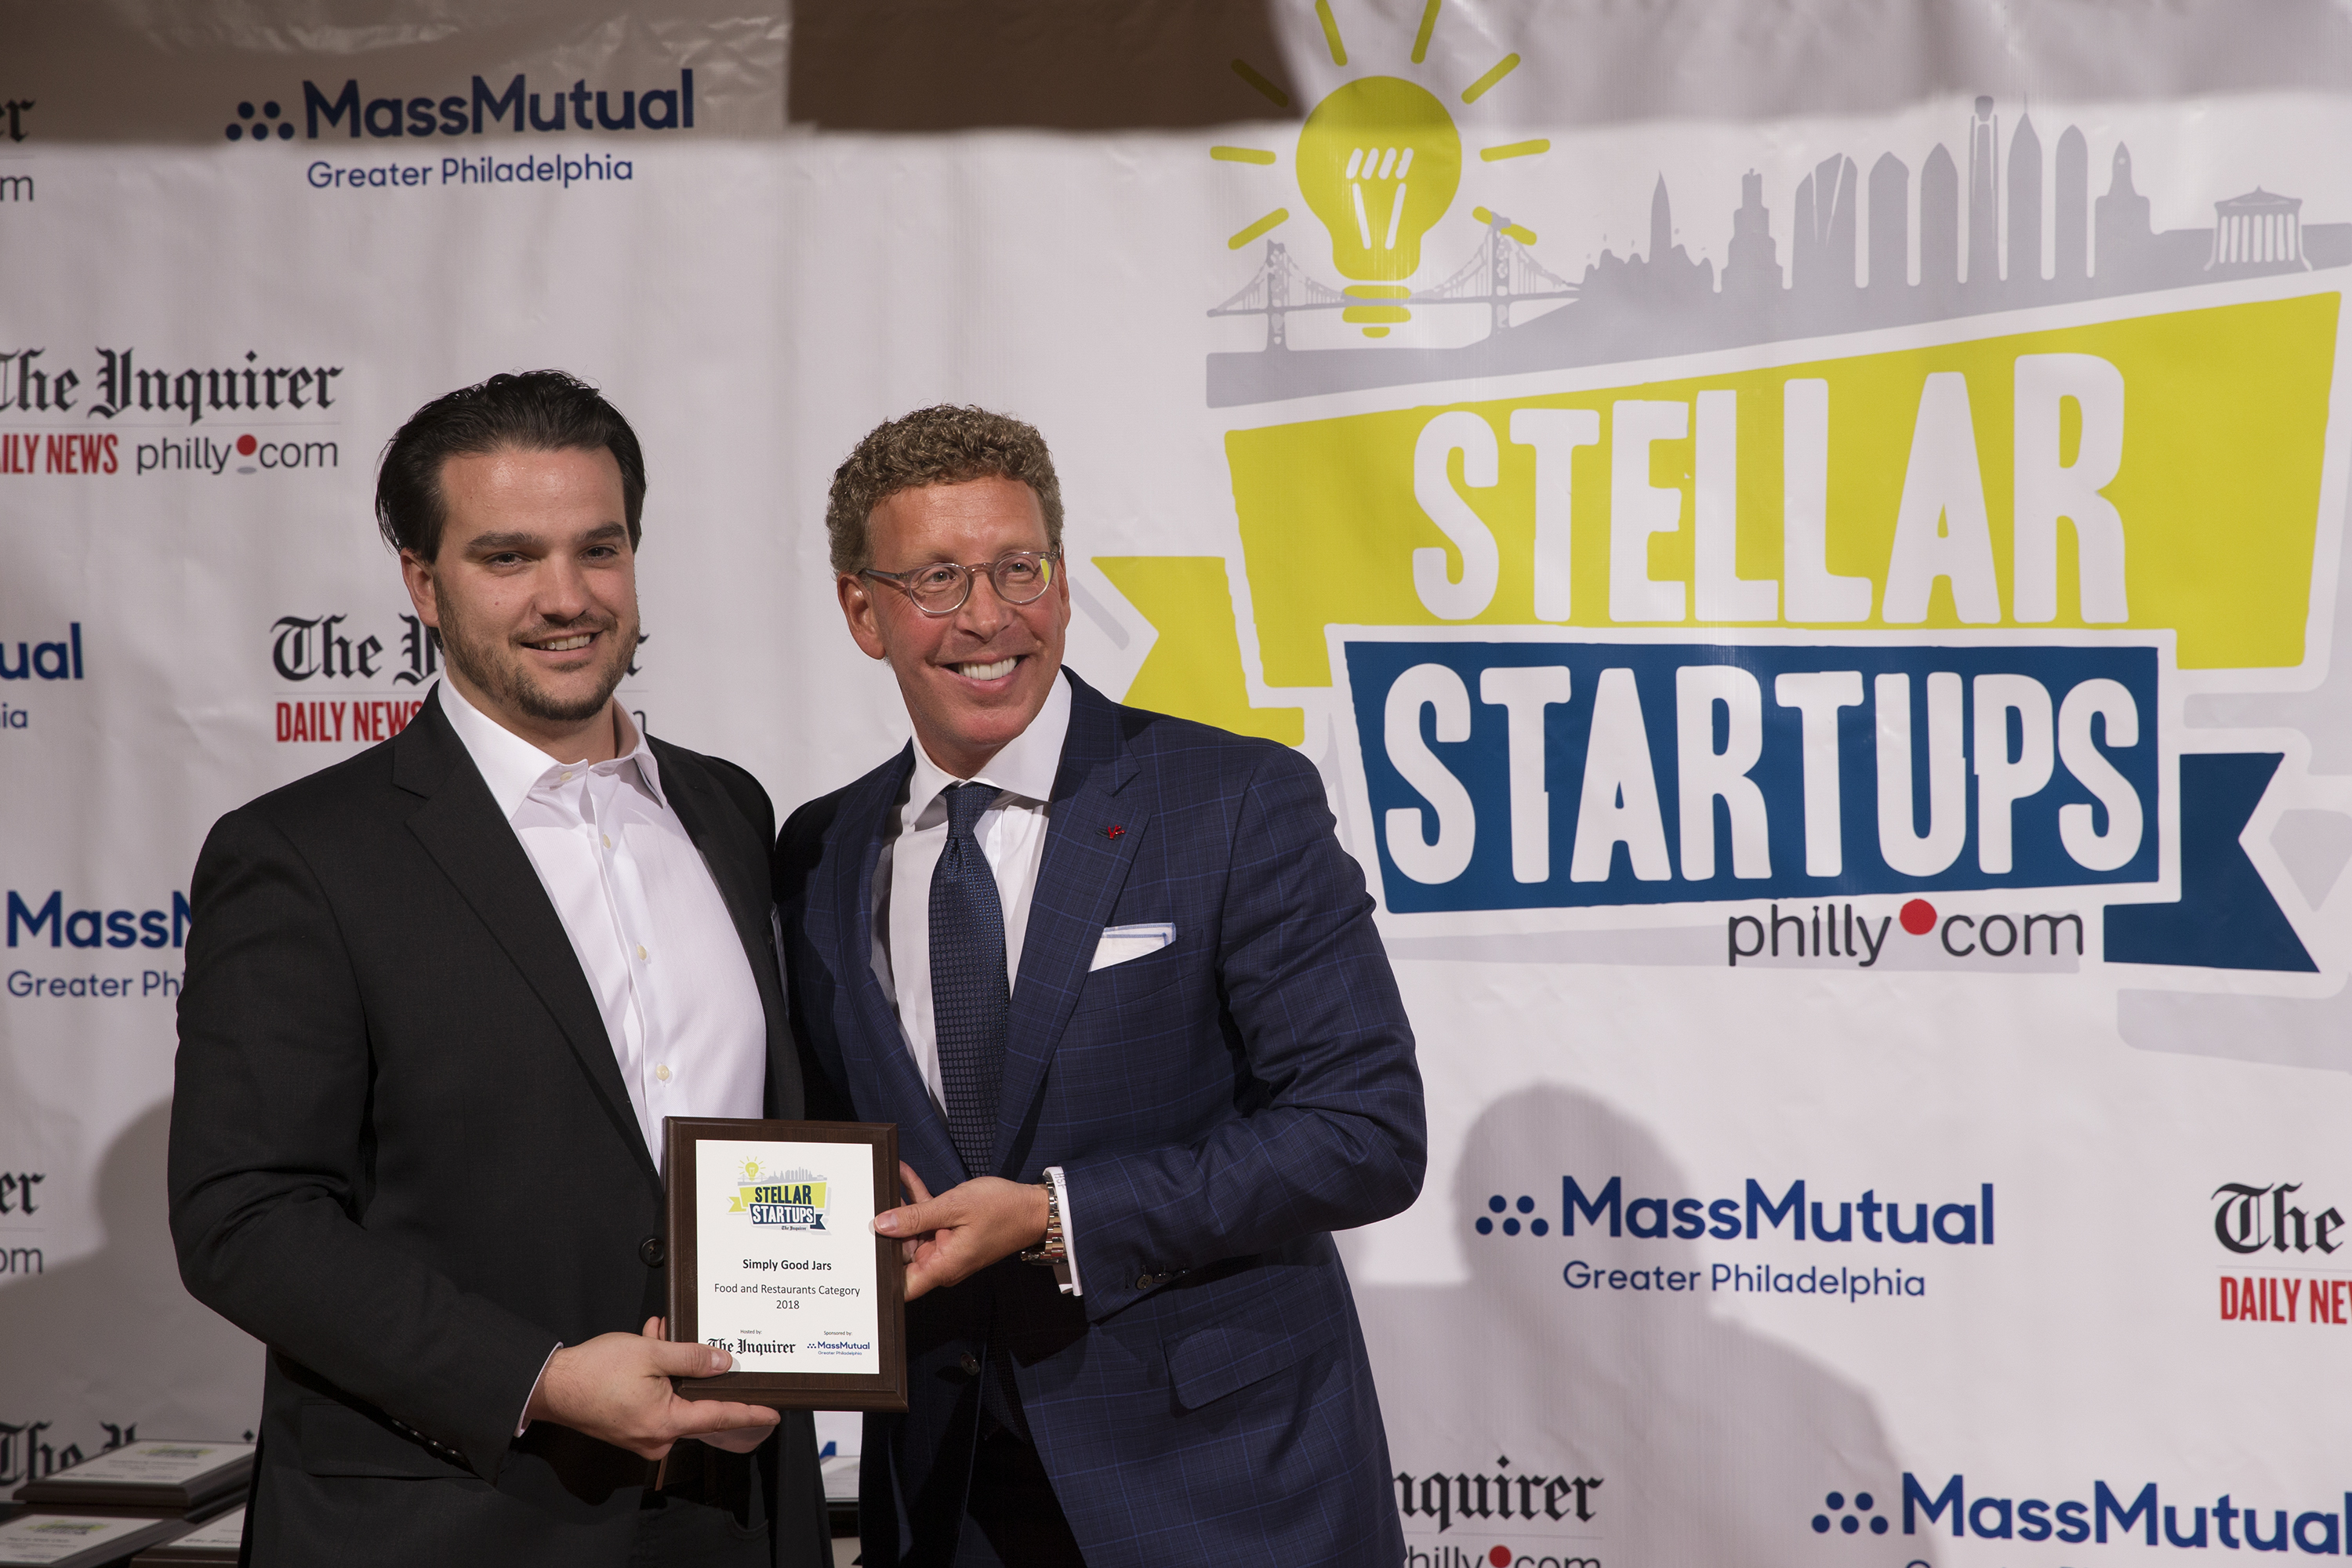 The winner of the food category is Simply Good Jars, CEO Jared Cannon (left) accepts the award from Harris Fishmen, president and CEO of MassMutual Greater Philadelphia.